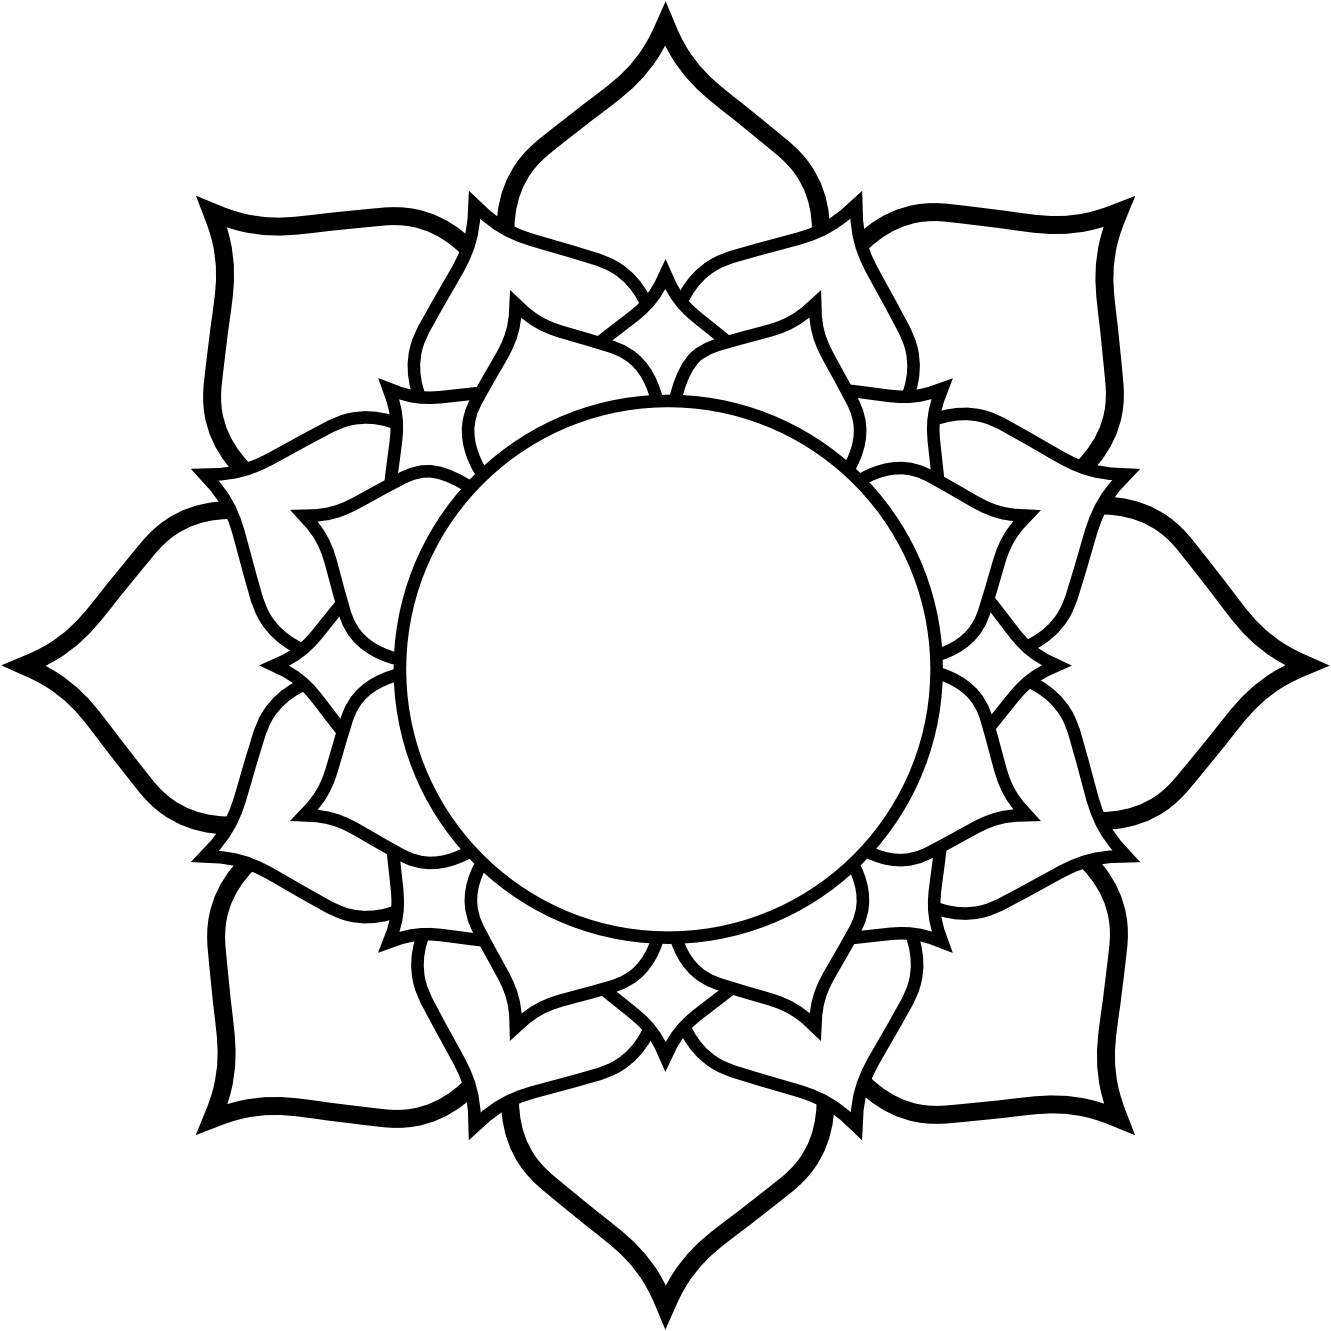 White Flower svg #8, Download drawings